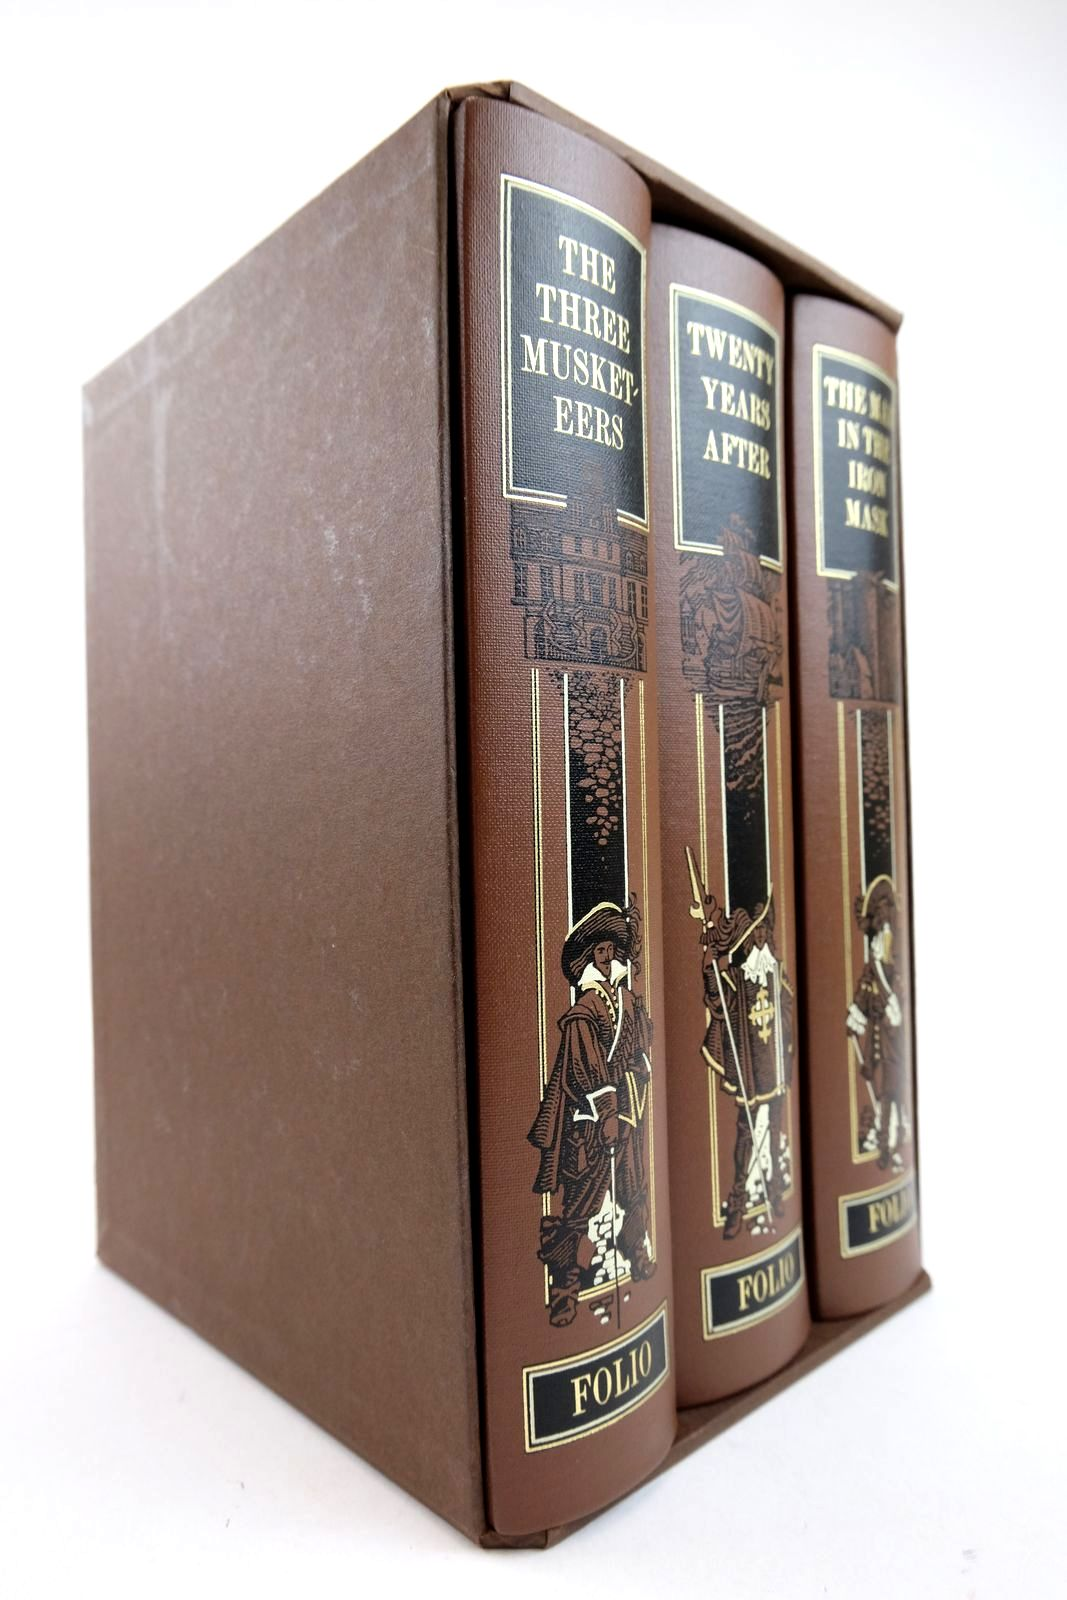 Photo of THE THREE MUSKETEERS, TWENTY YEARS AFTER, THE MAN IN THE IRON MASK written by Dumas, Alexandre Fraser, George Macdonald illustrated by Pisarev, Roman published by Folio Society (STOCK CODE: 2132902)  for sale by Stella & Rose's Books